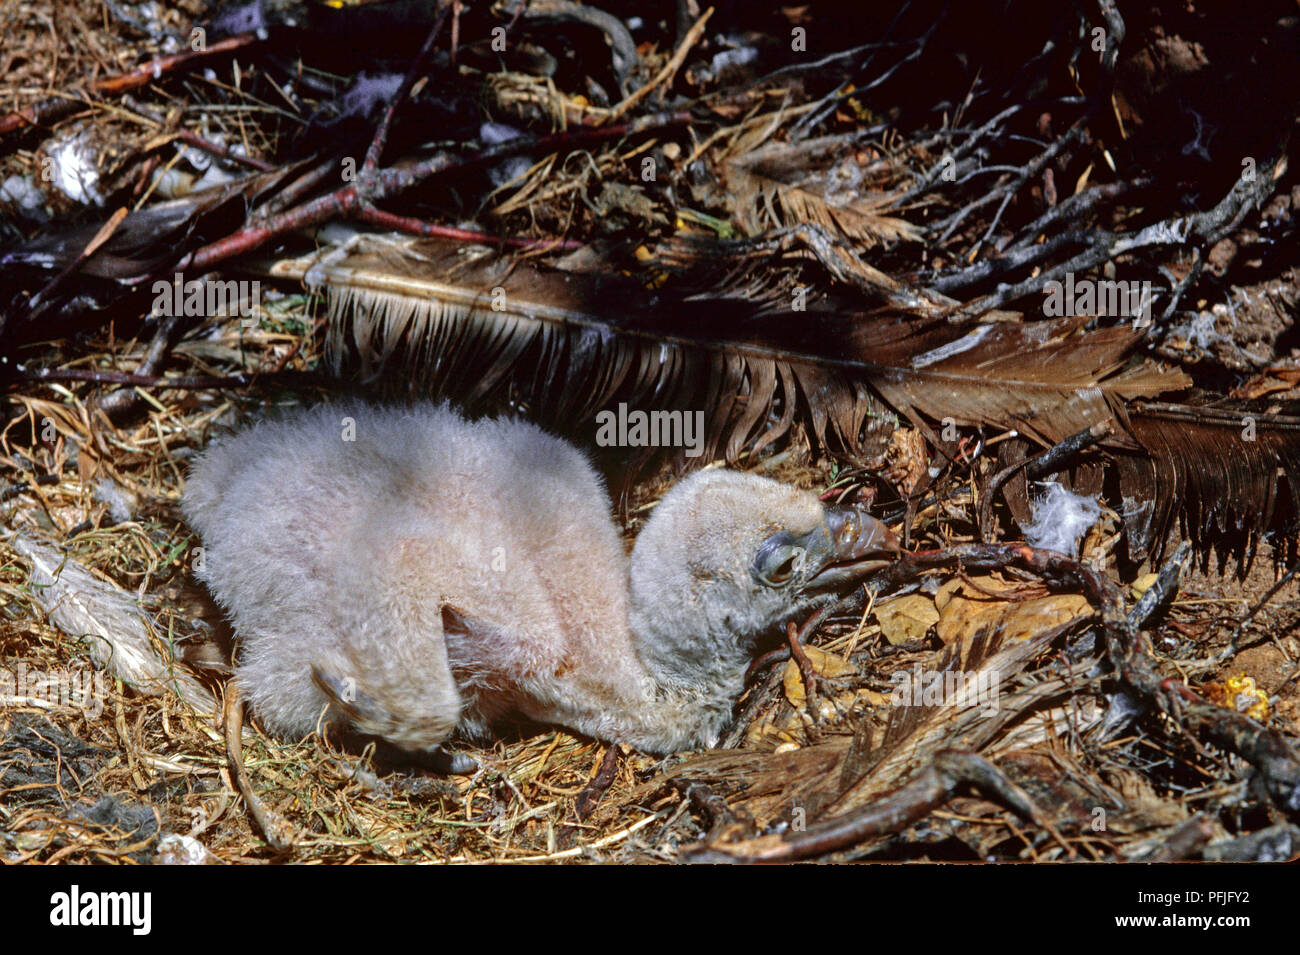 Griffon Vulture or Eurasian Griffon (Gyps fulvus) - nest with a chick. Southern Spain. Europe - Stock Image